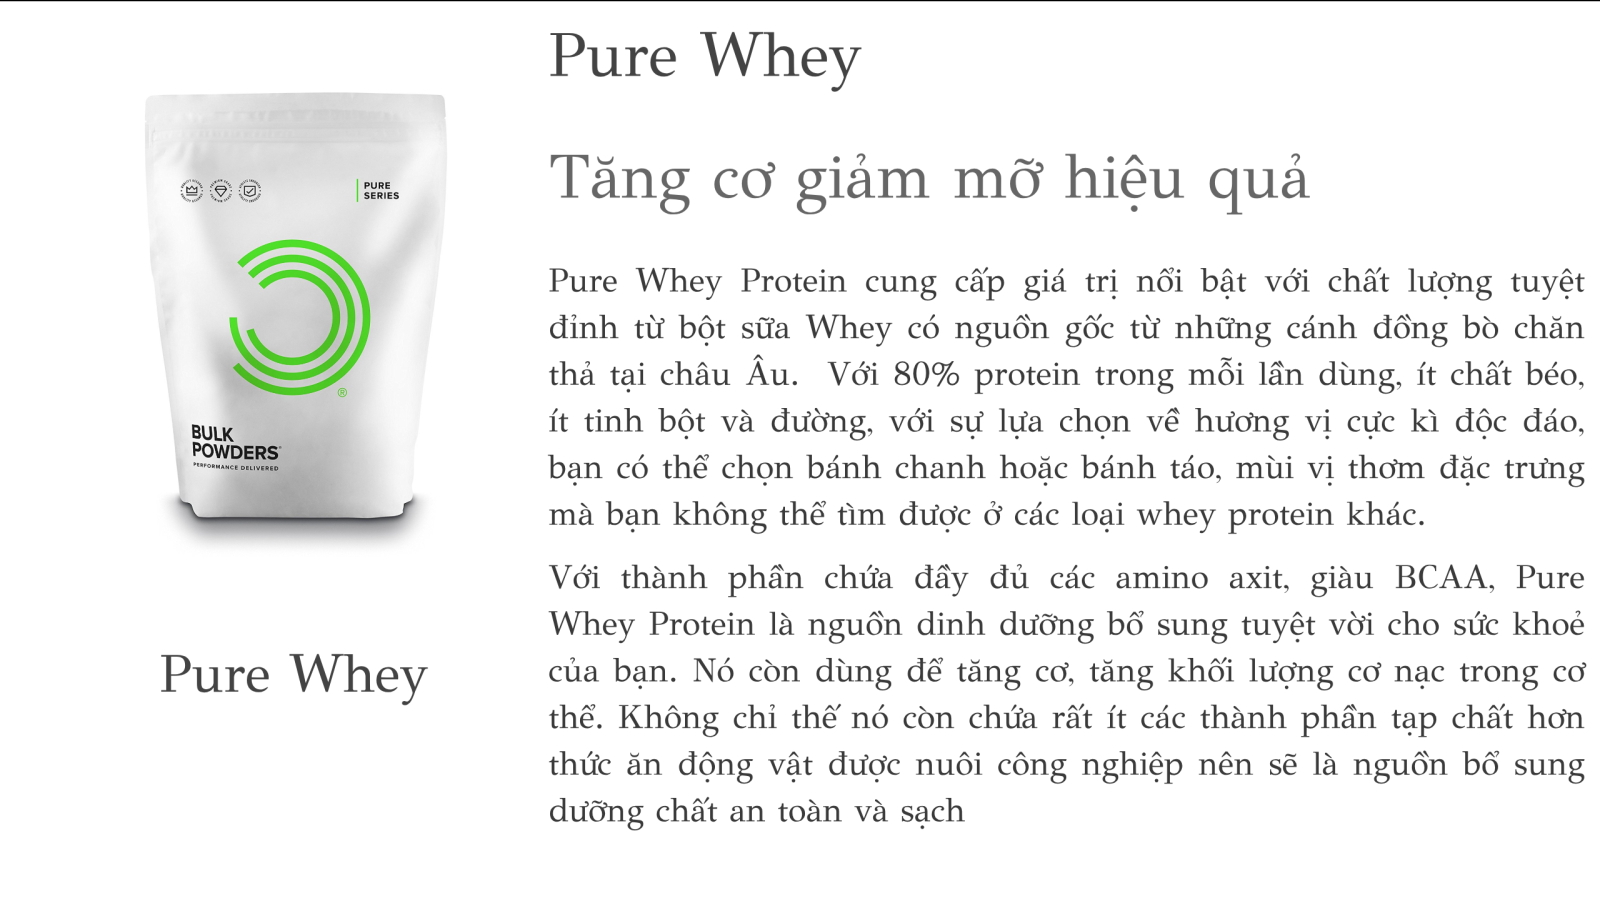 Bulk Powders - Pure Whey Protein - Lemon Meringue (Bánh Chanh) 5kg